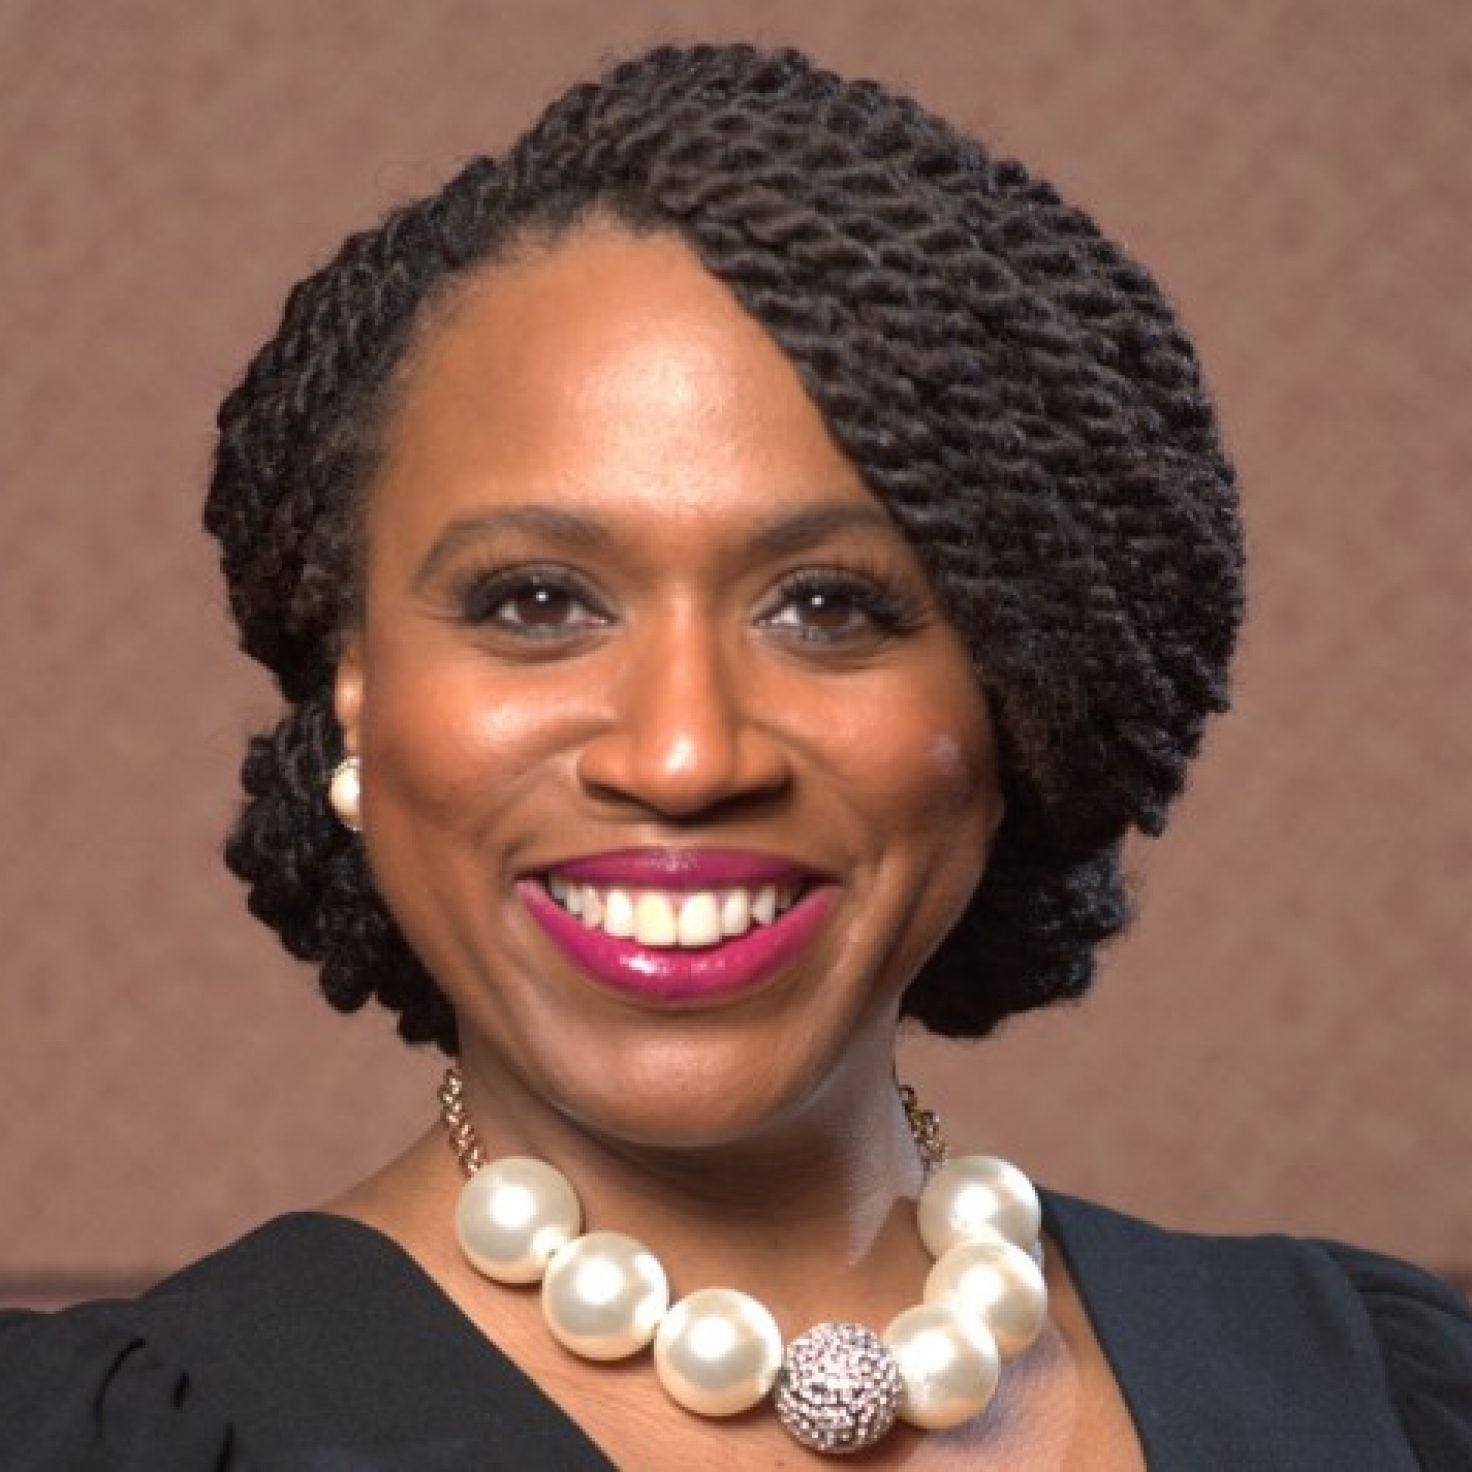 Ayanna Pressley, Democratic Representative, Says She Has Alopecia and Reveals Beautiful Bald Head